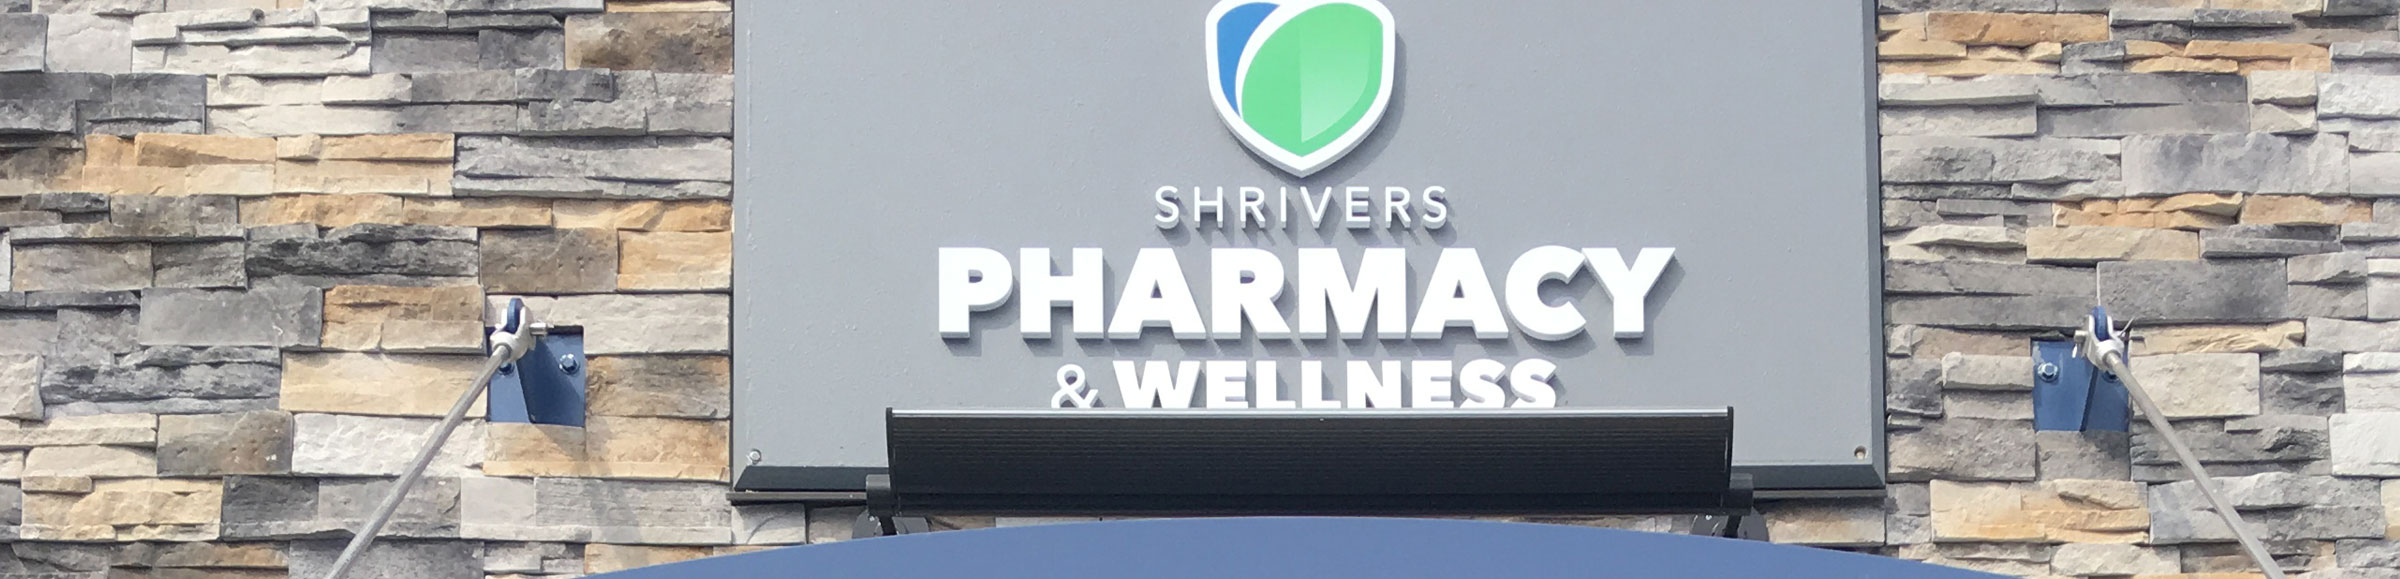 Athens-Ohio-Coler-Healthcare-Shrivers-Pharmacy-Location